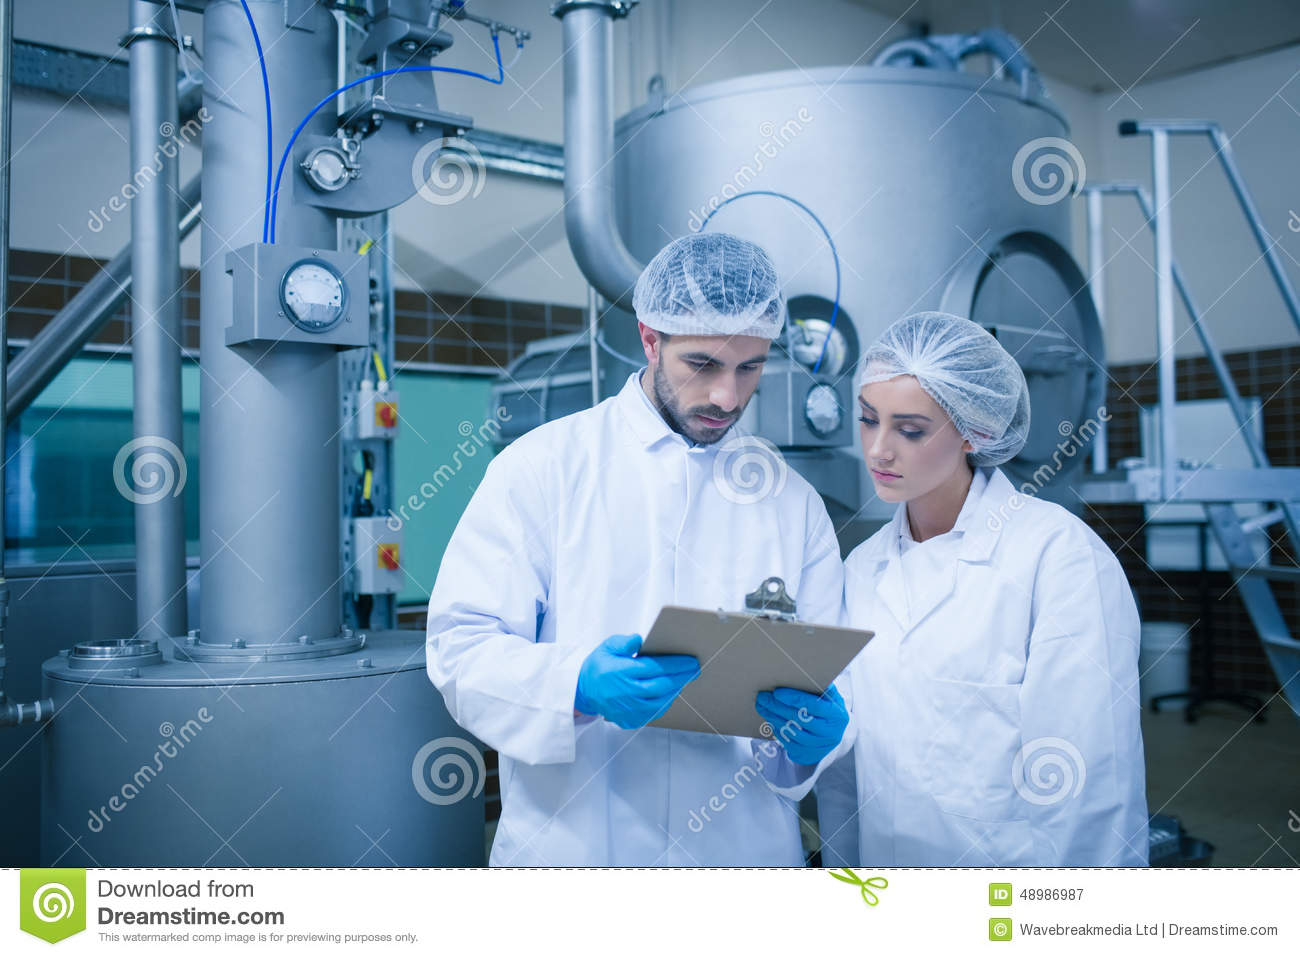 Food technicians working together